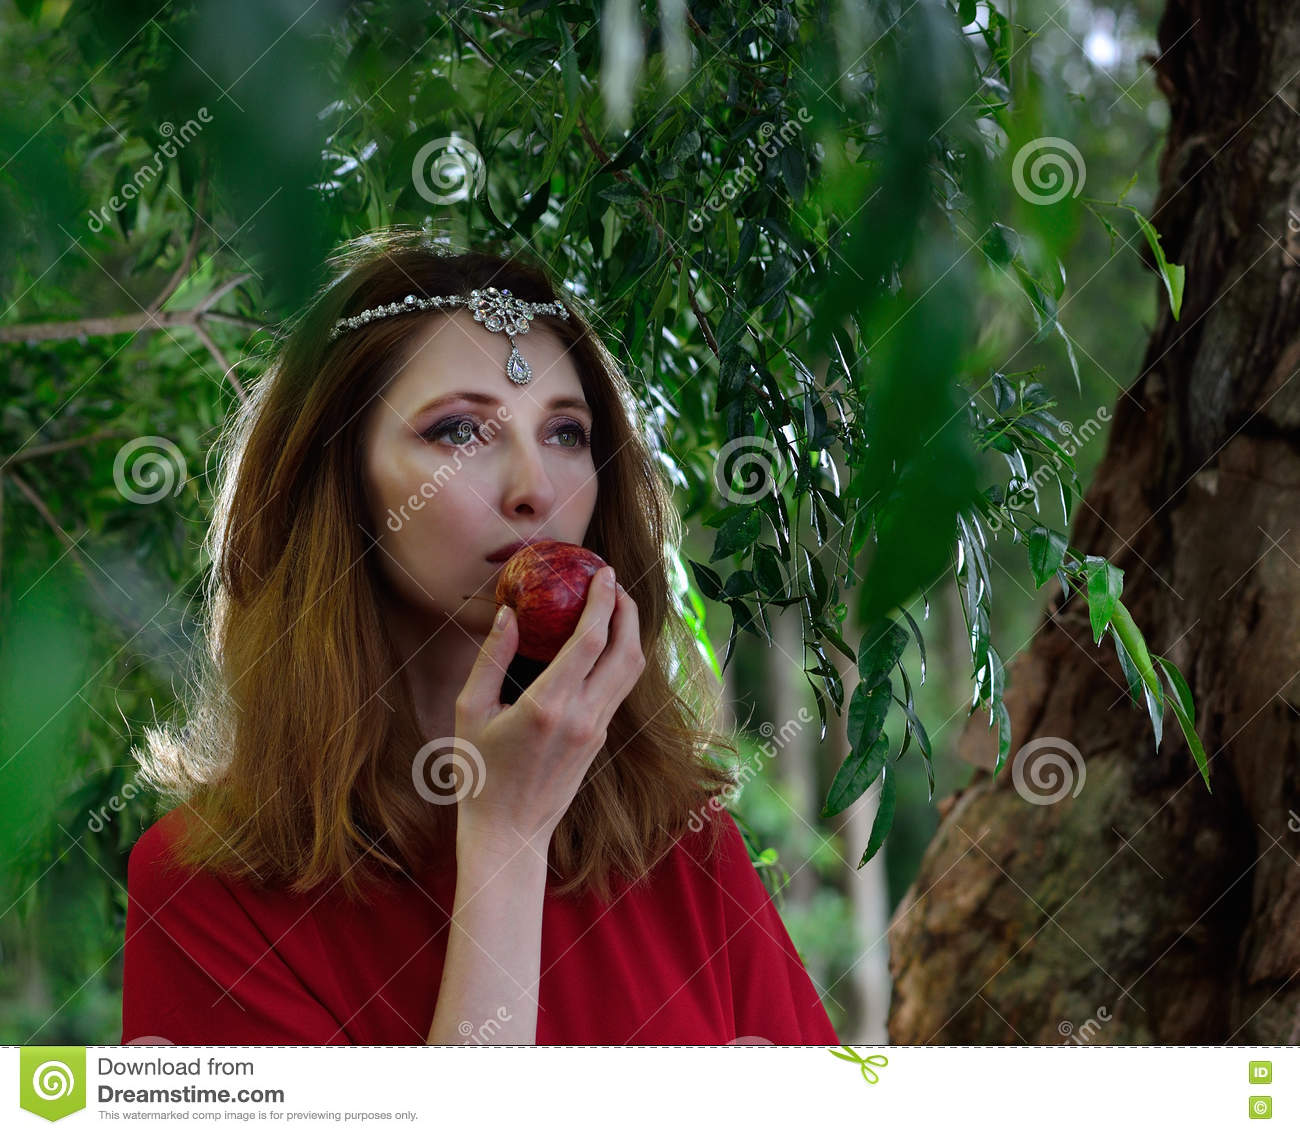 Red dress lady in Jungle